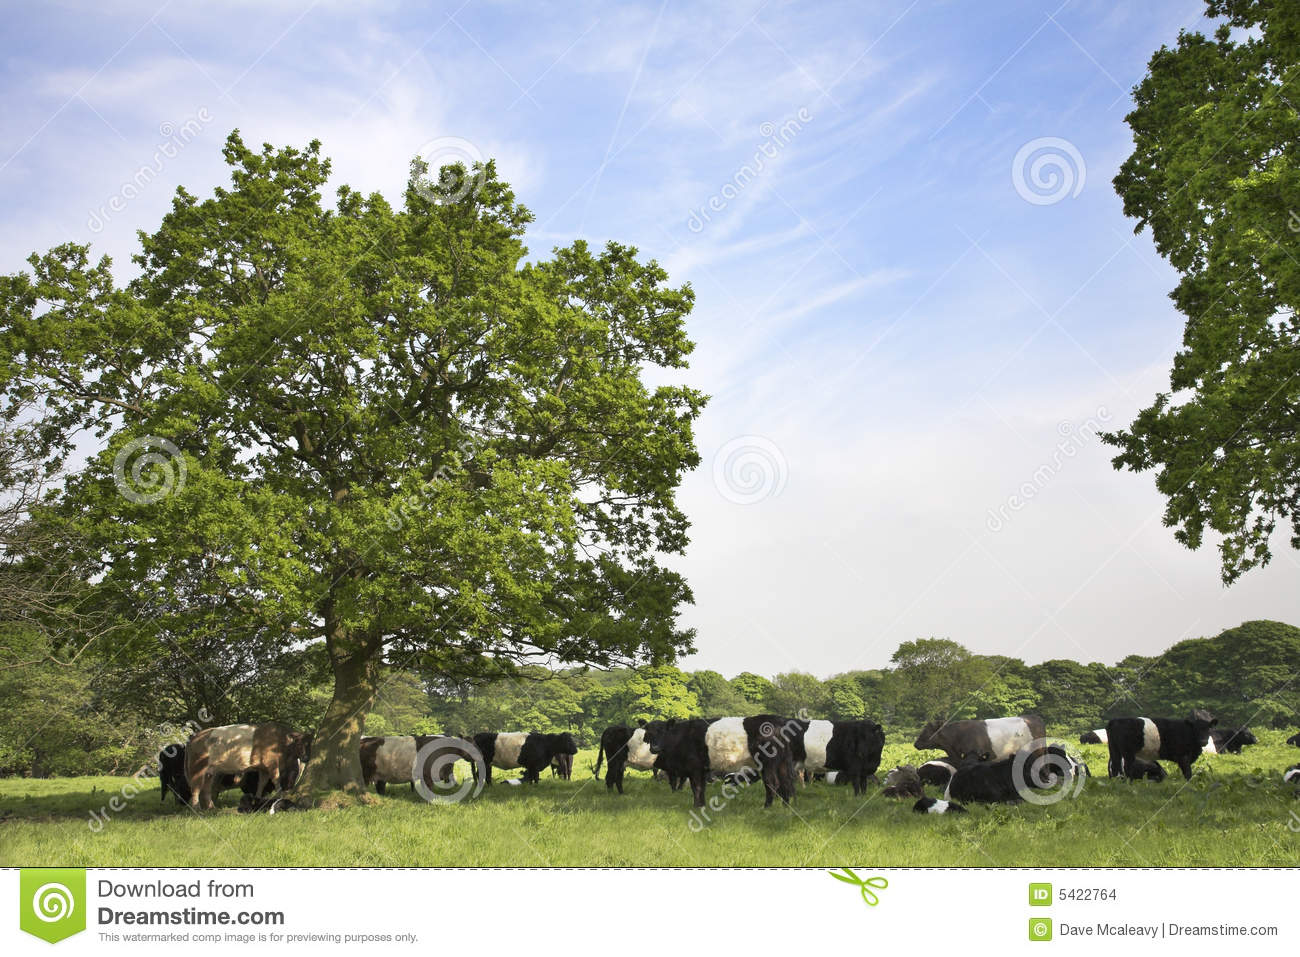 Countryside scene with Belted Galloway cattle